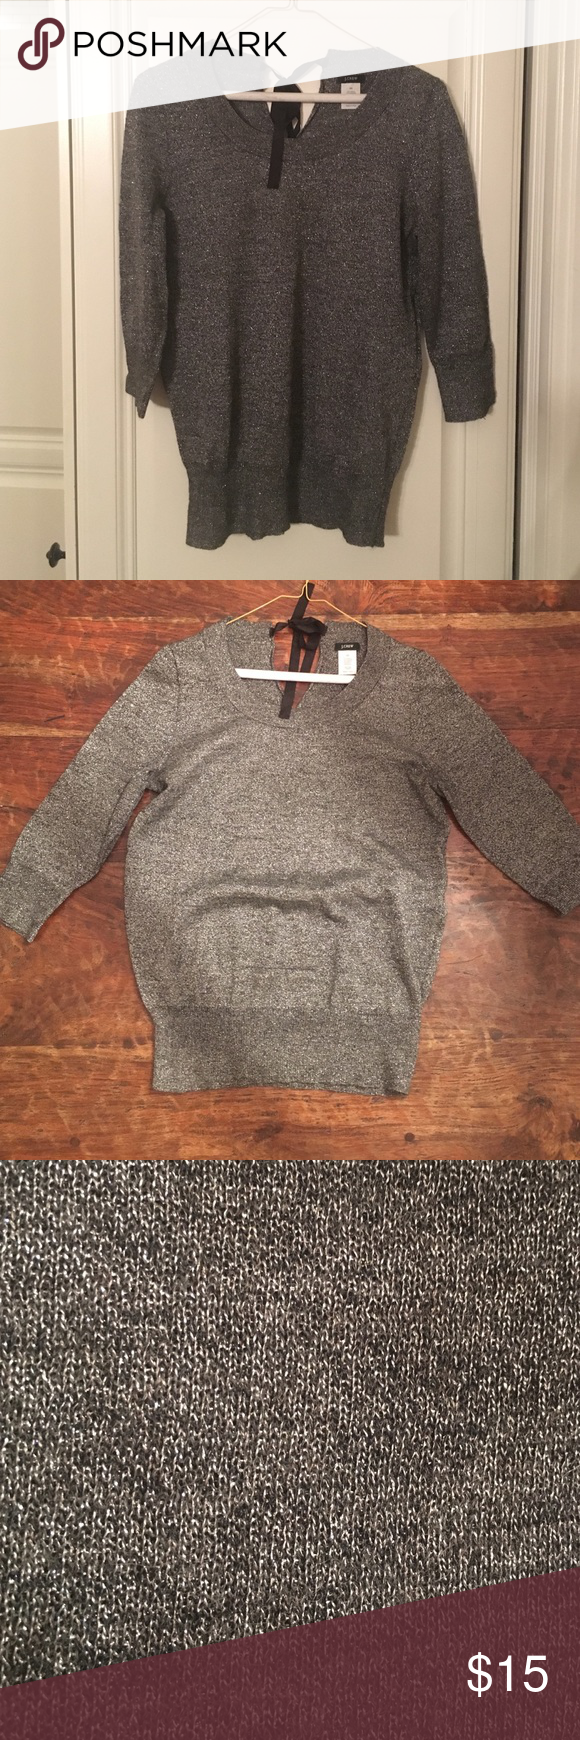 J.Crew metallic sweater Silver, sparkly quarter sleeve sweater with black ribbon tie (DISCLAIMER: horizontal run on the bottom front side) J. Crew Sweaters Crew & Scoop Necks